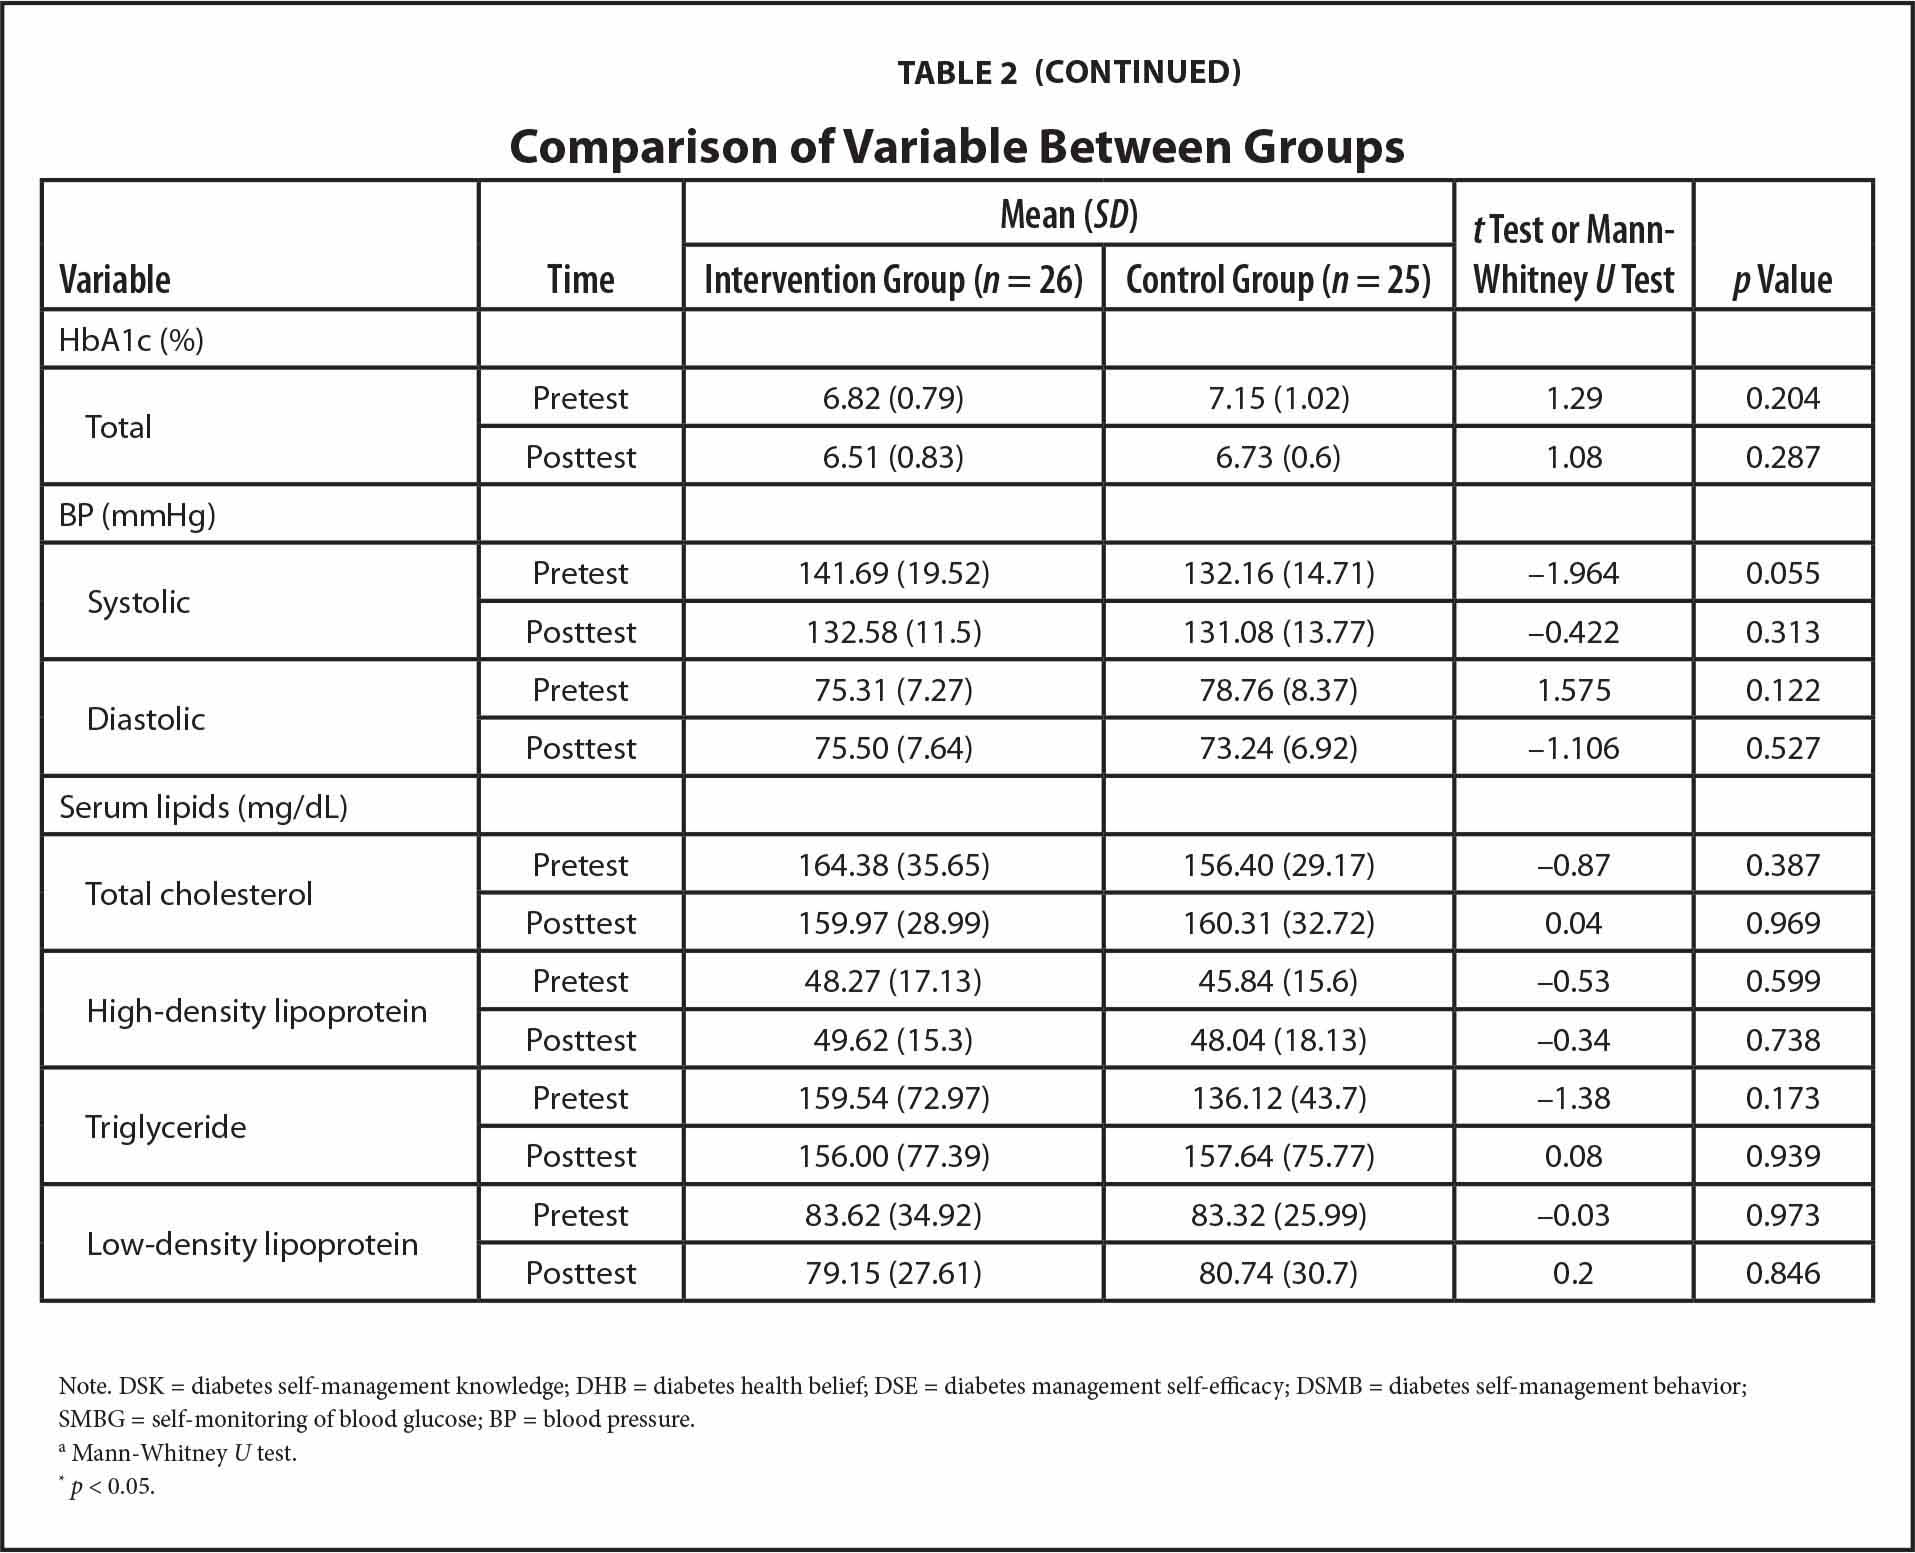 Comparison of Variable Between Groups